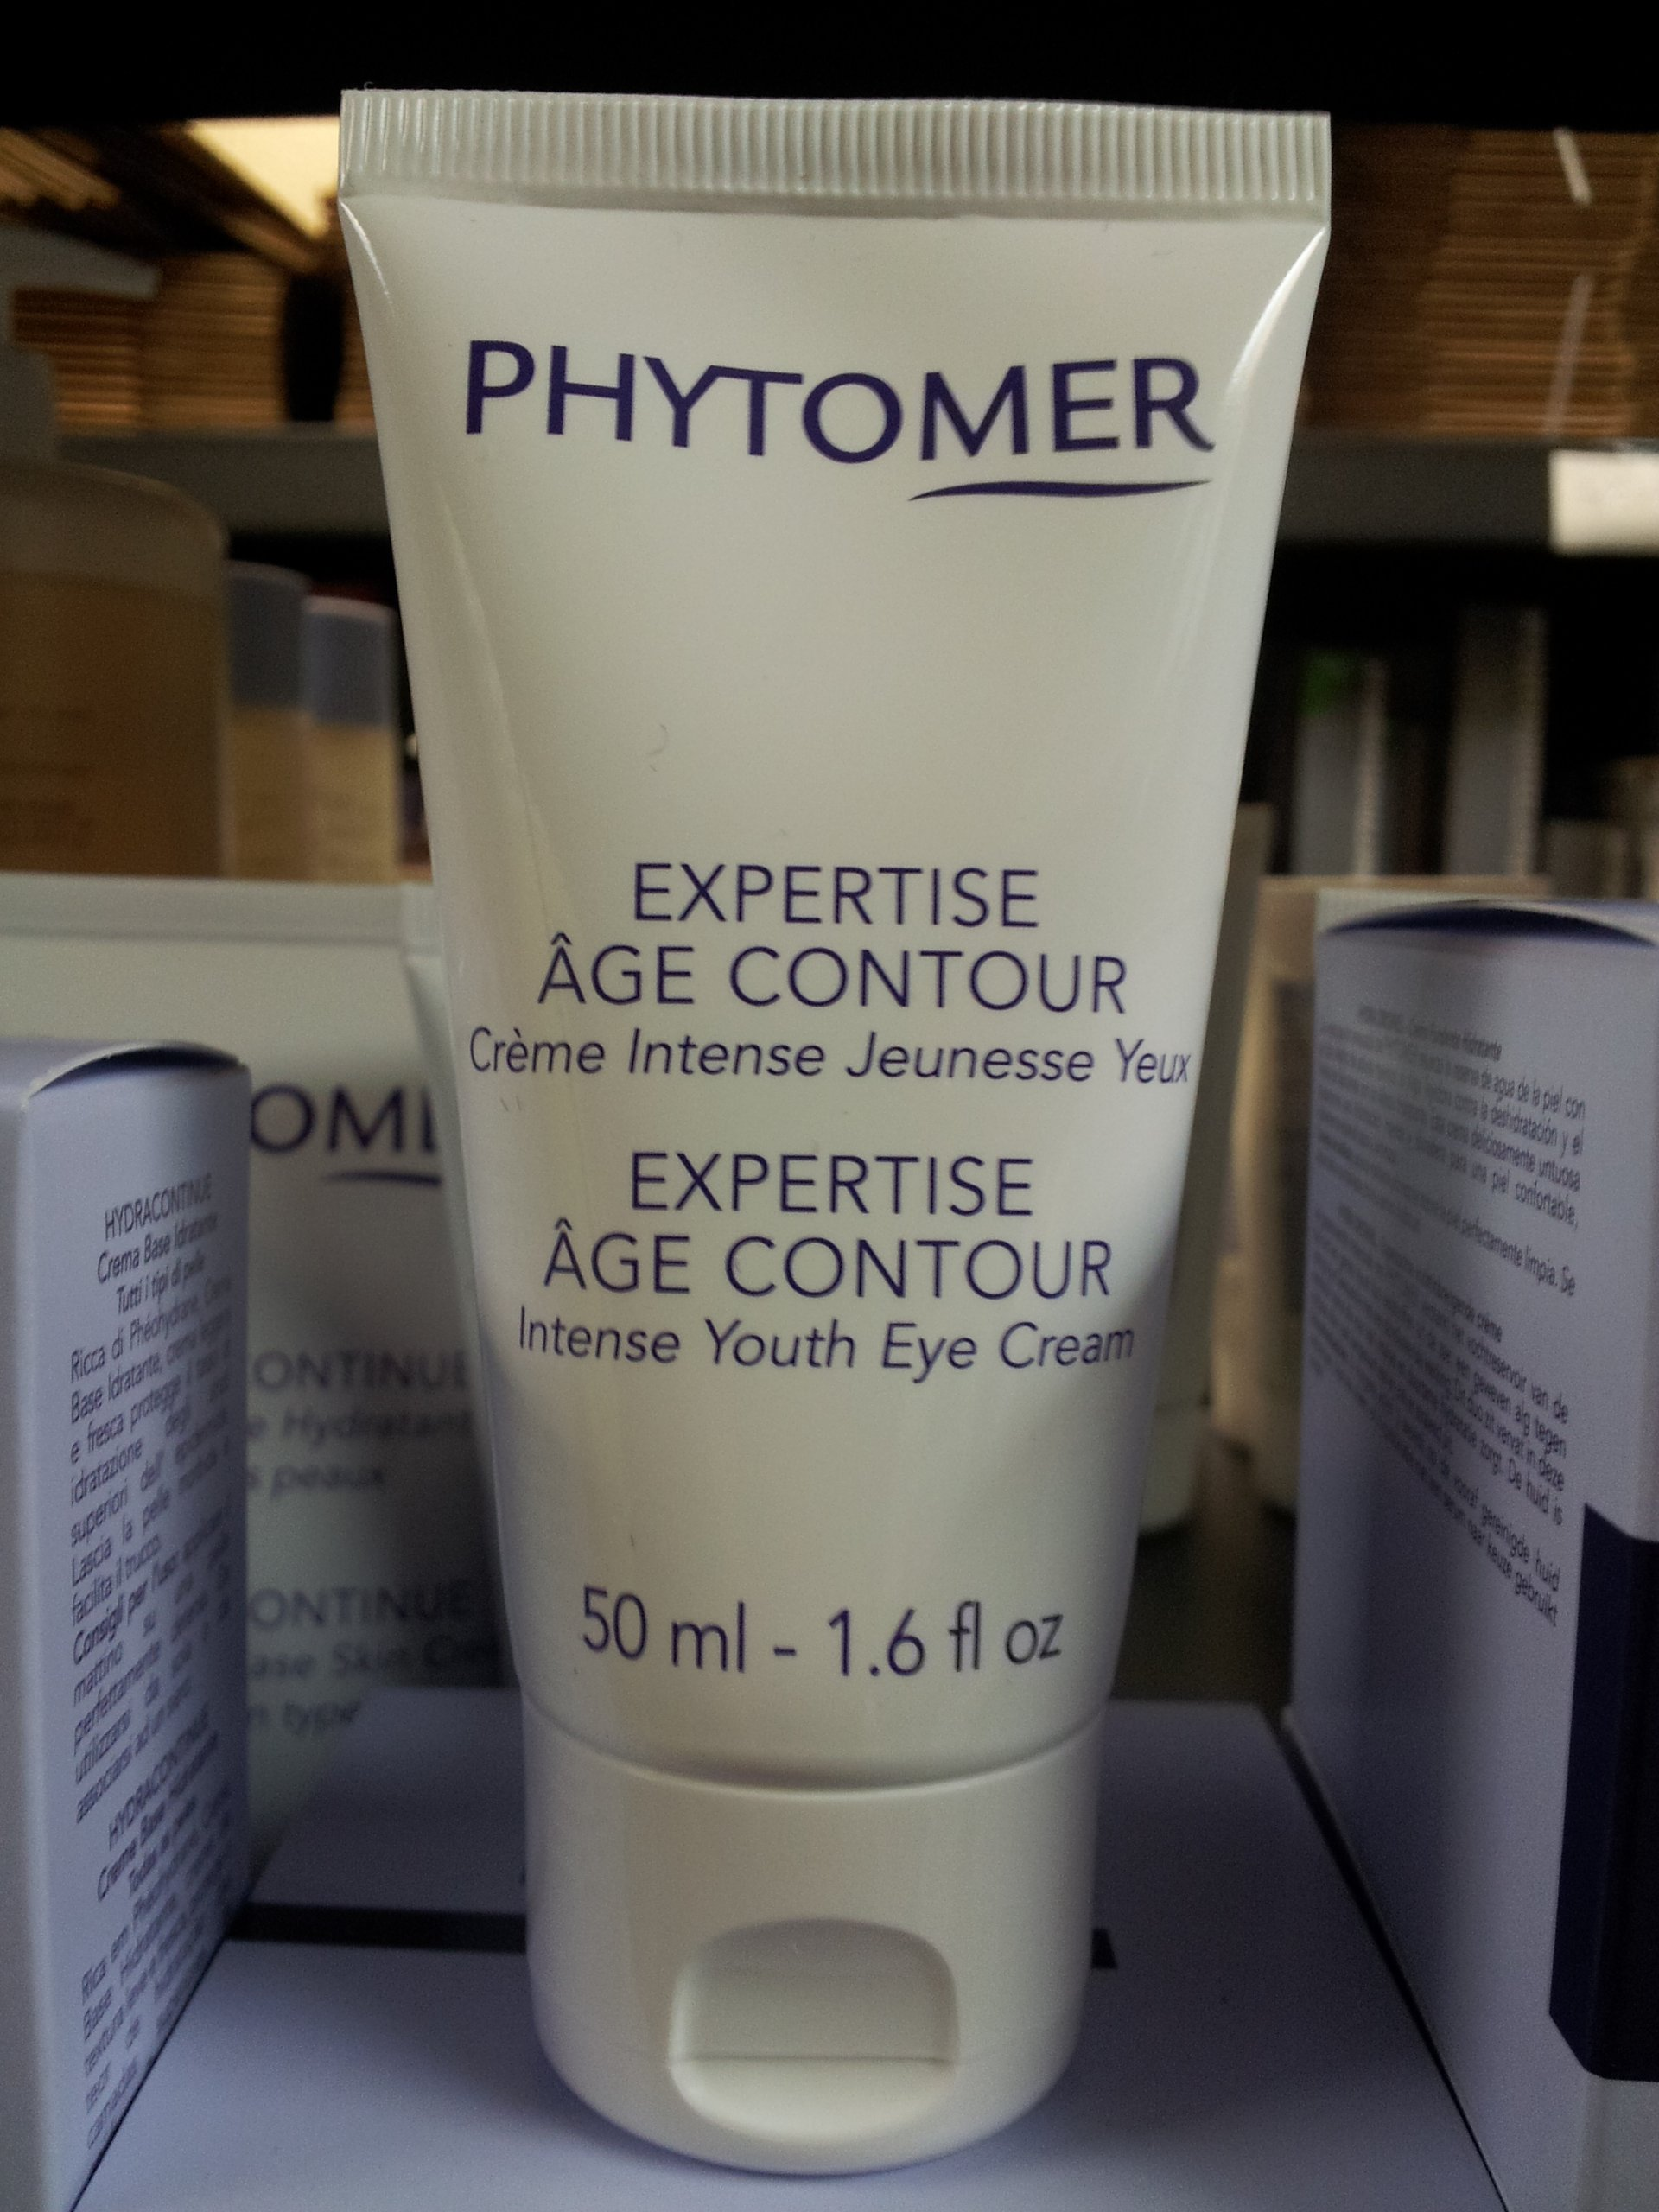 Phytomer Expertise Age Contour Intense Youth Cream